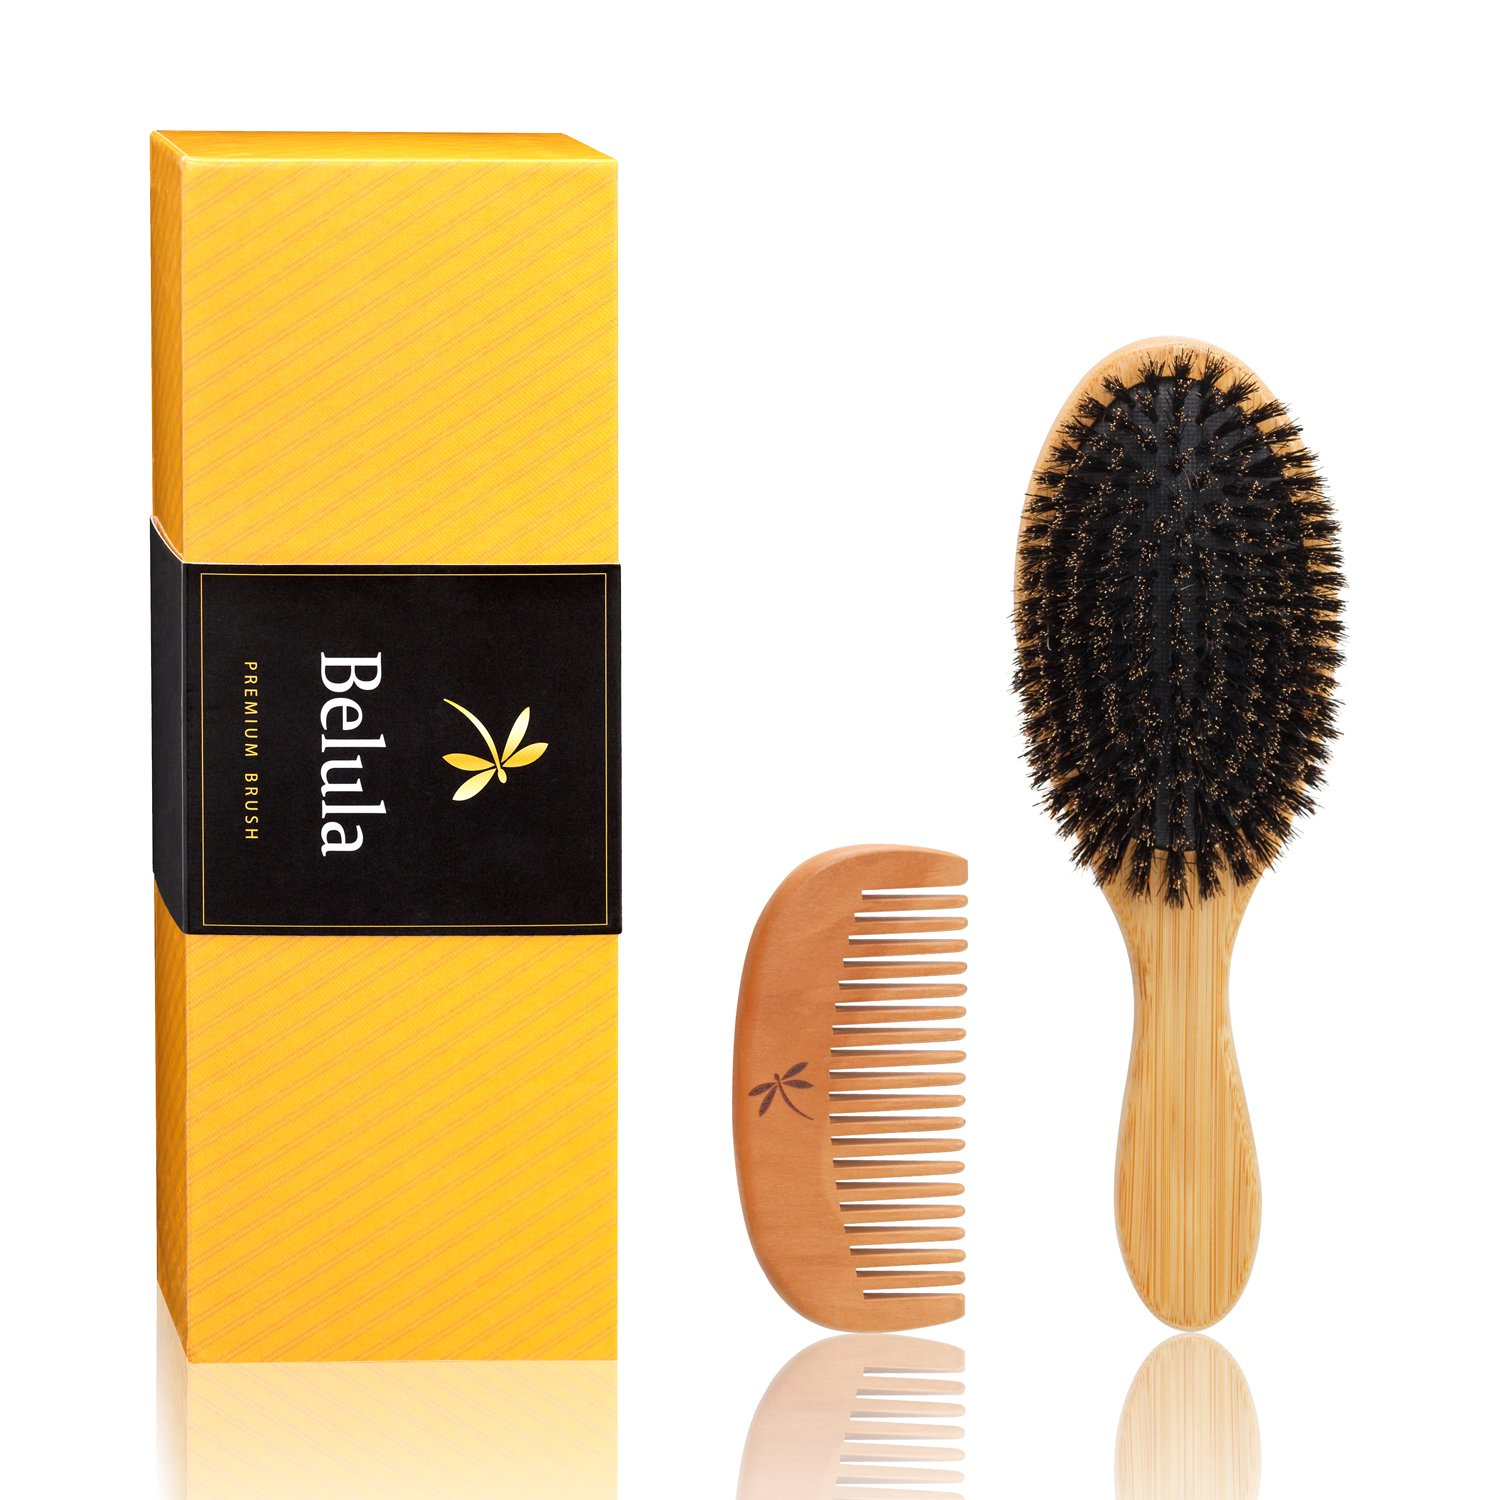 100% Boar Bristle Hair Brush Set. Soft Natural Bristles for Thin and Fine Hair. Restore Shine And Texture. Wooden Comb, Travel Bag and Spa Headband Included! by Belula